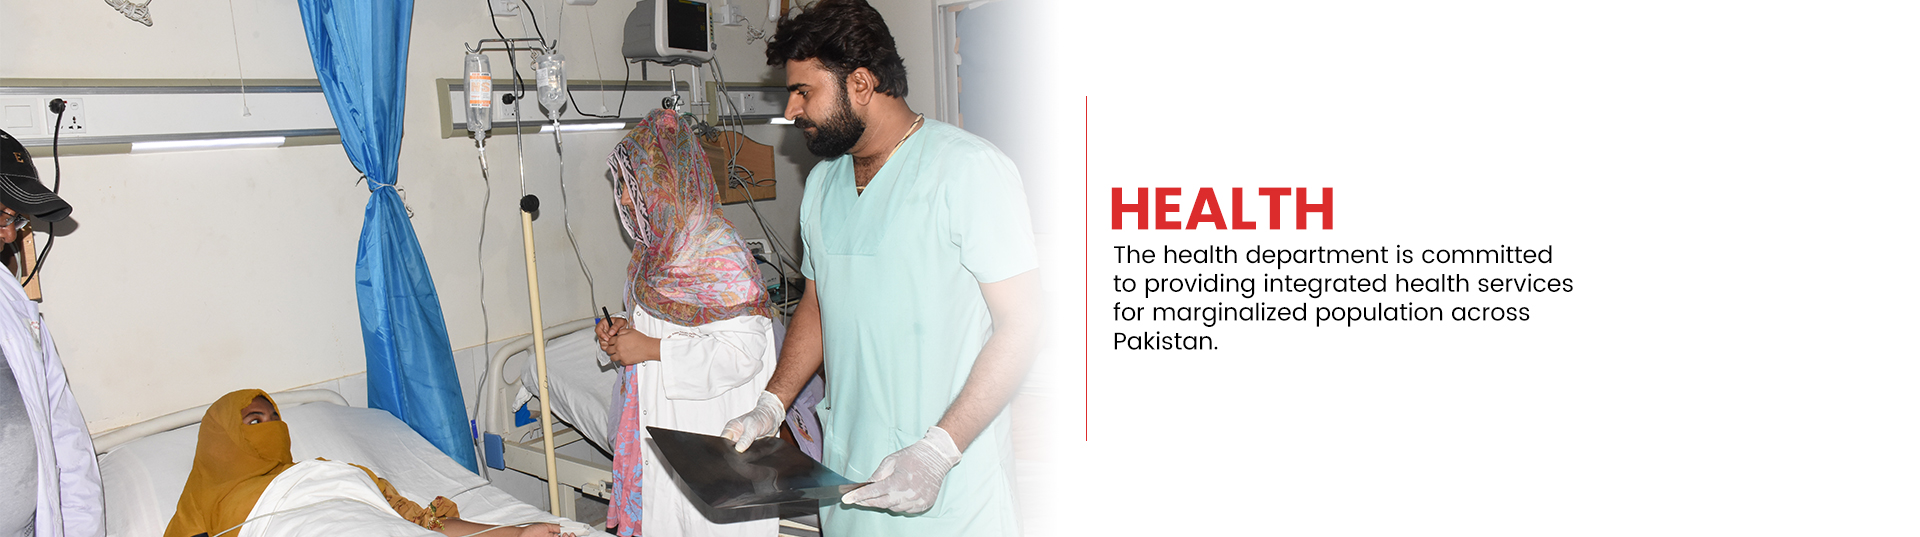 Free health services